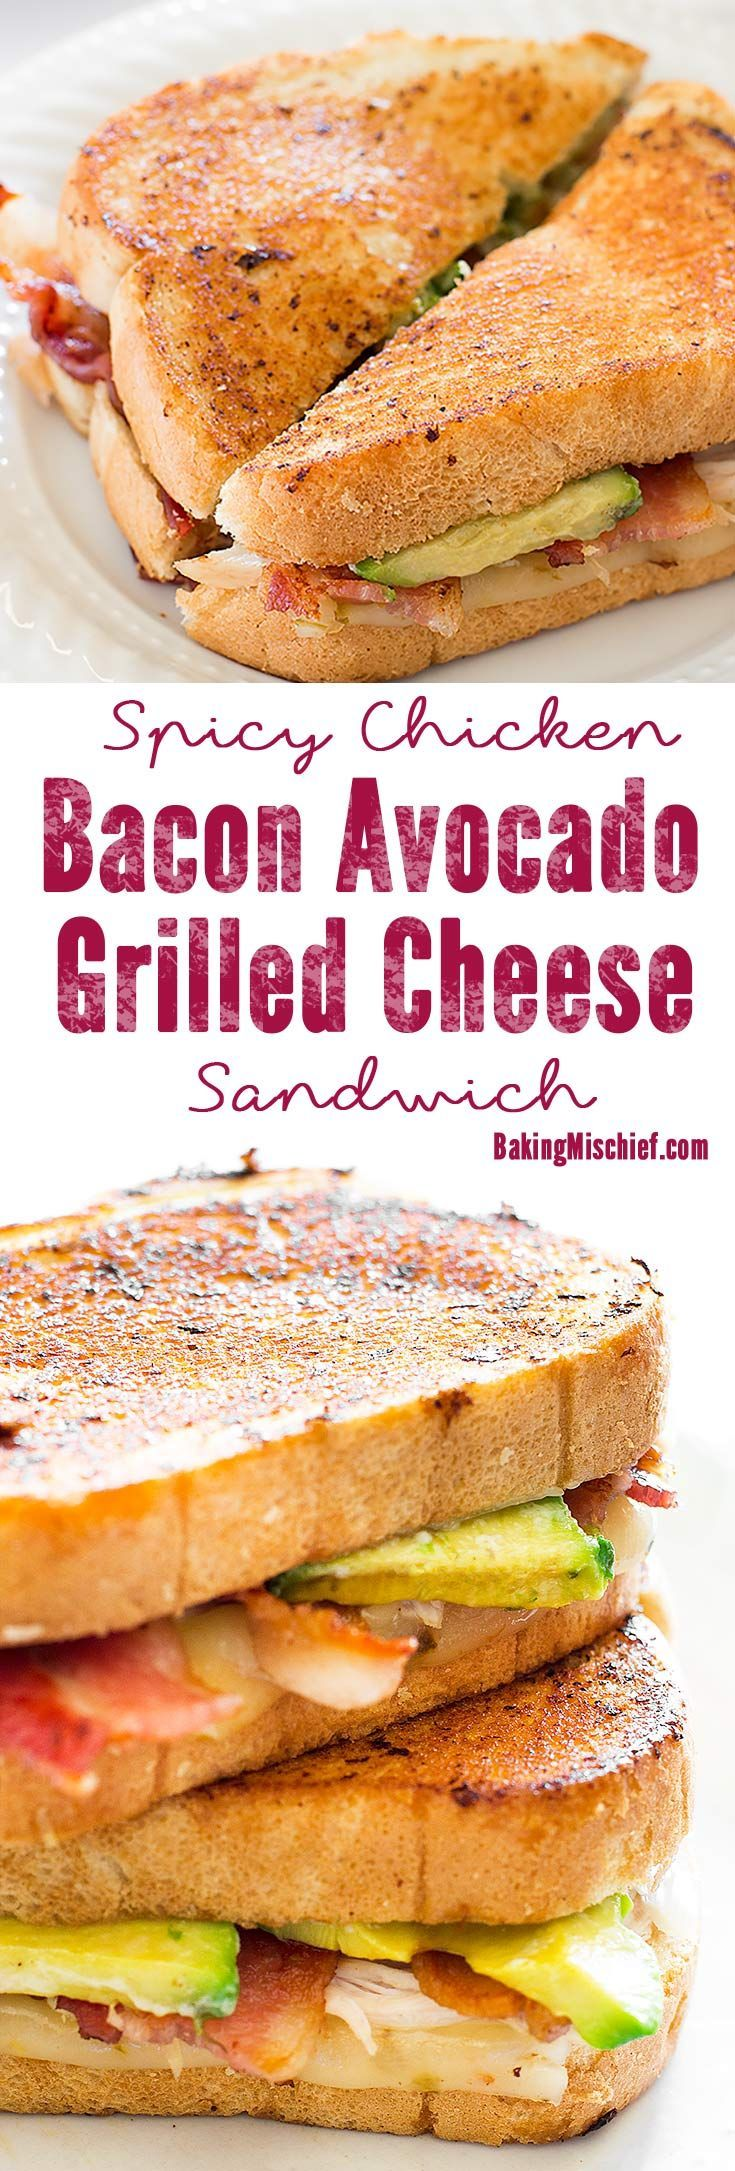 A grown up grilled cheese sandwich loaded with bacon, avocado, chicken, and pepper jack cheese. Recipe includes nutritional information. From http://BakingMischief.com